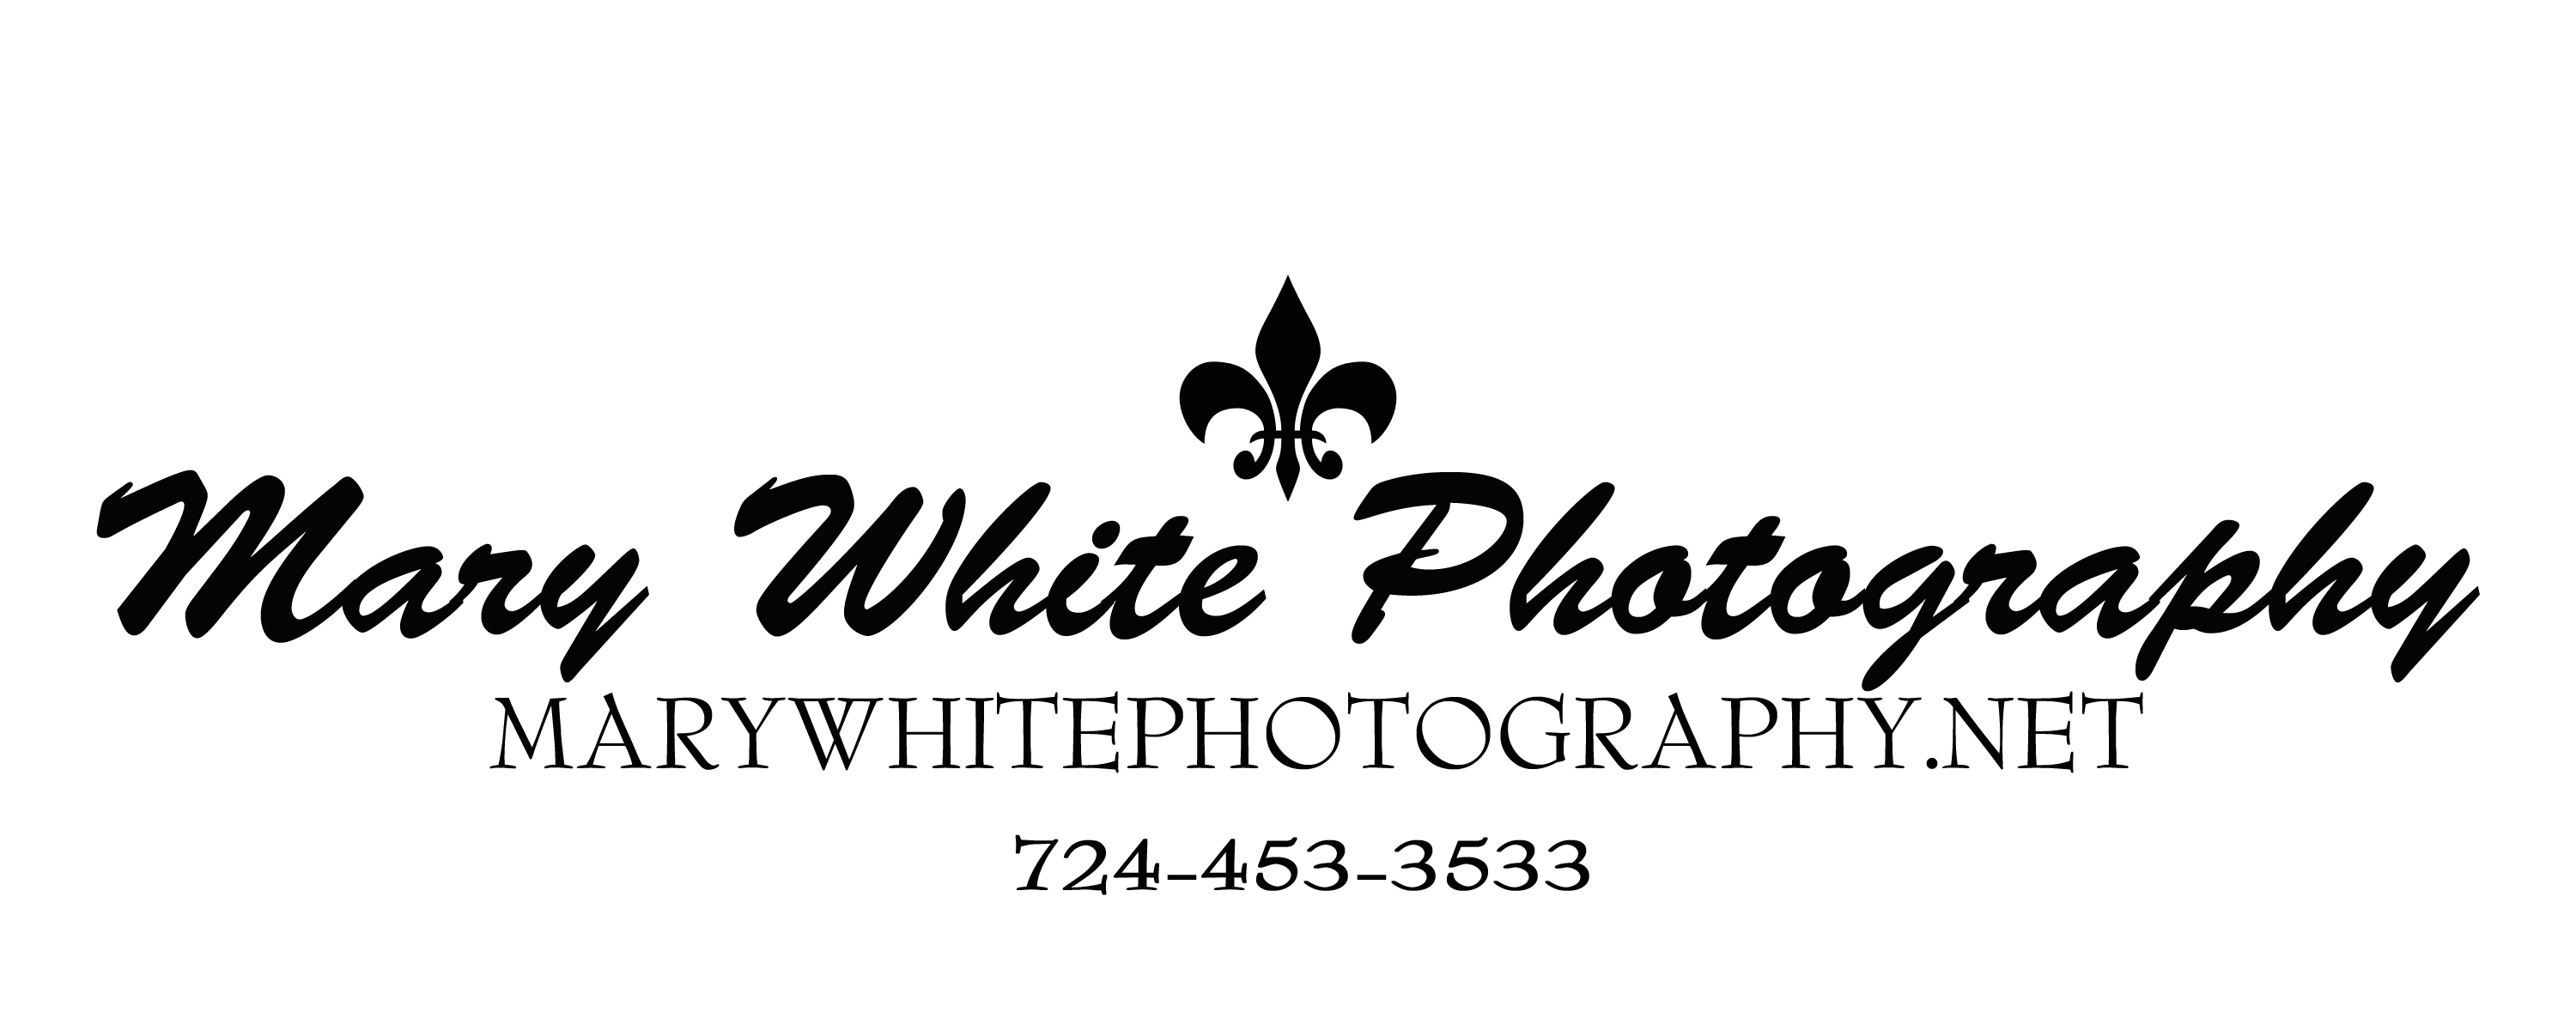 Mary White Photography